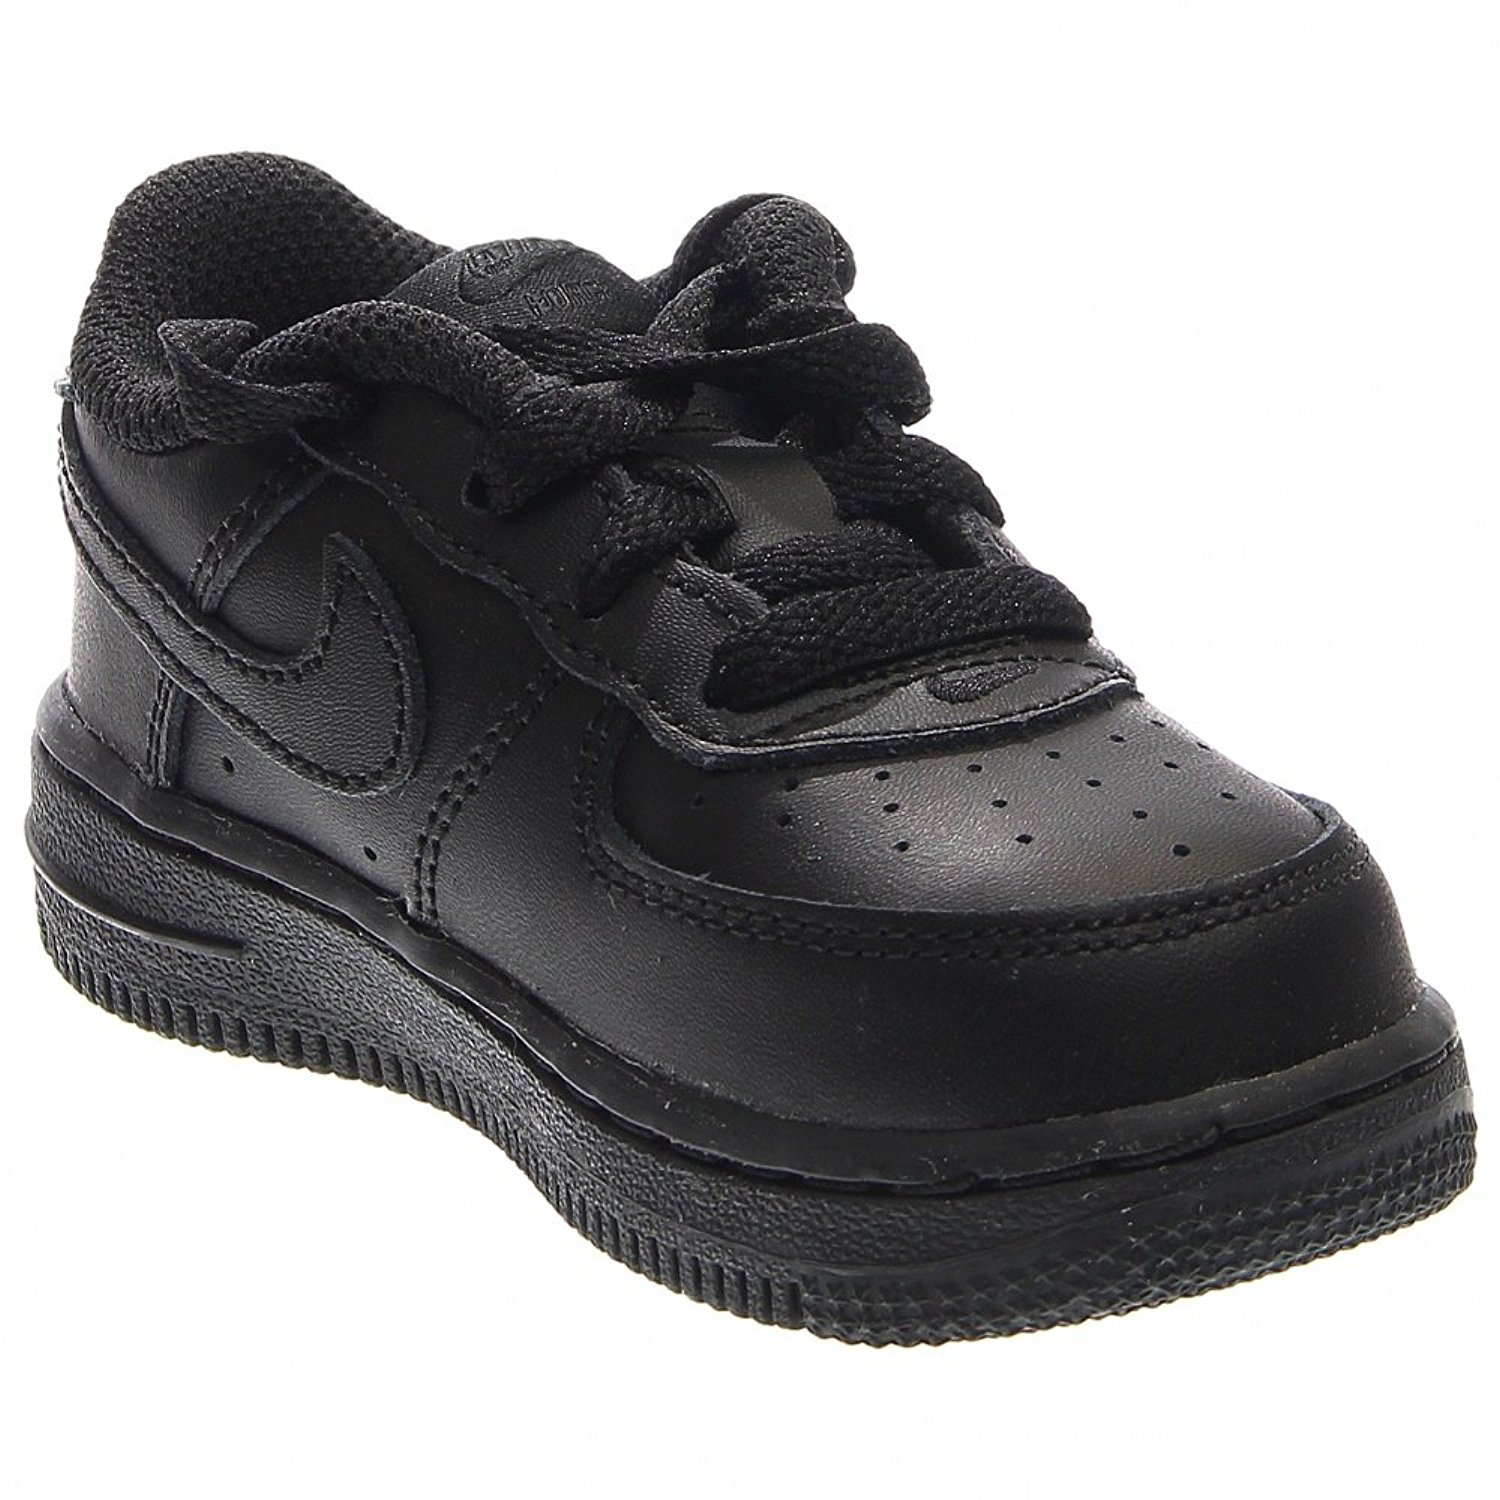 best service 5f463 cf2e8 Buy  314194-009  NIKE AIR FORCE 1 TD INFANTS SHOES BLACK BLACK in Cheap  Price on m.alibaba.com